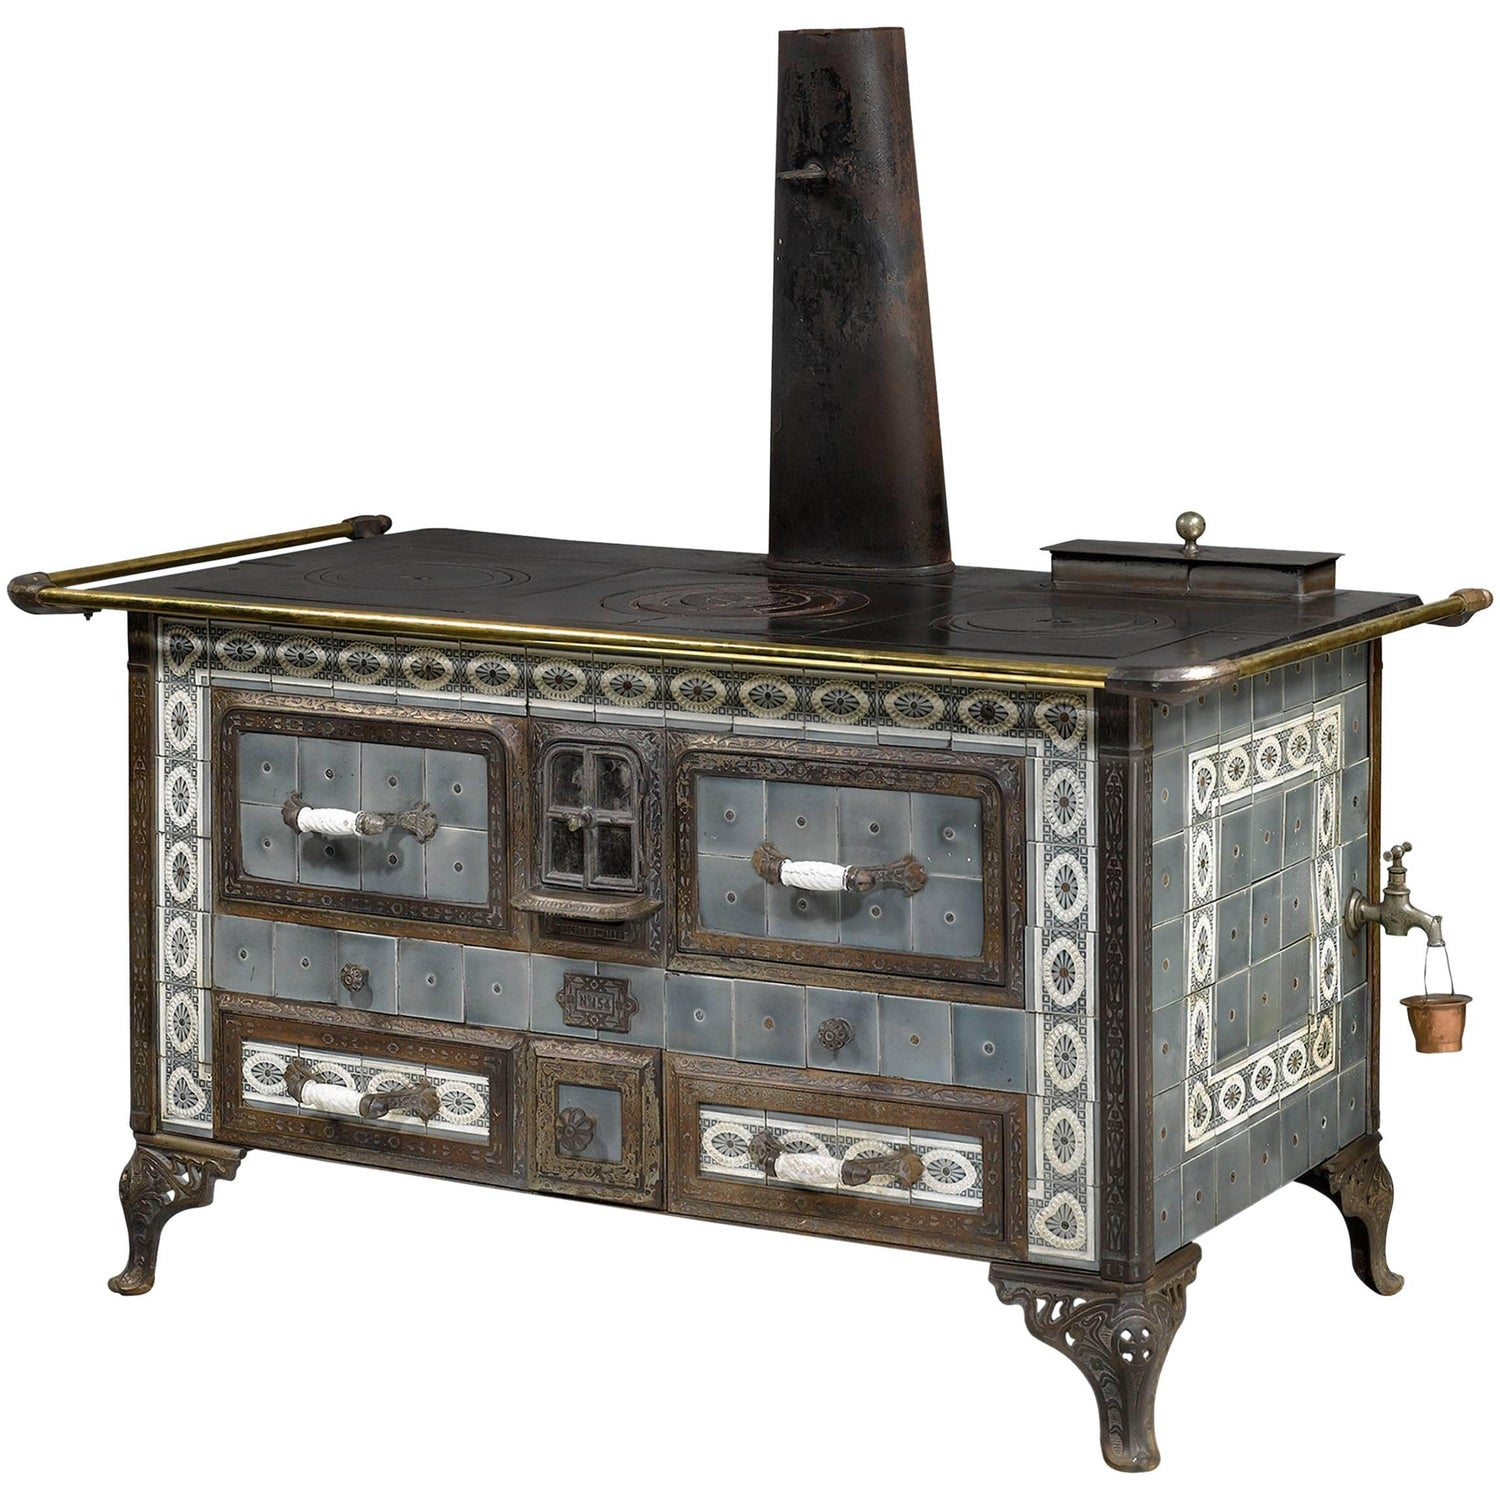 antique stoves 53 for sale on 1stdibs